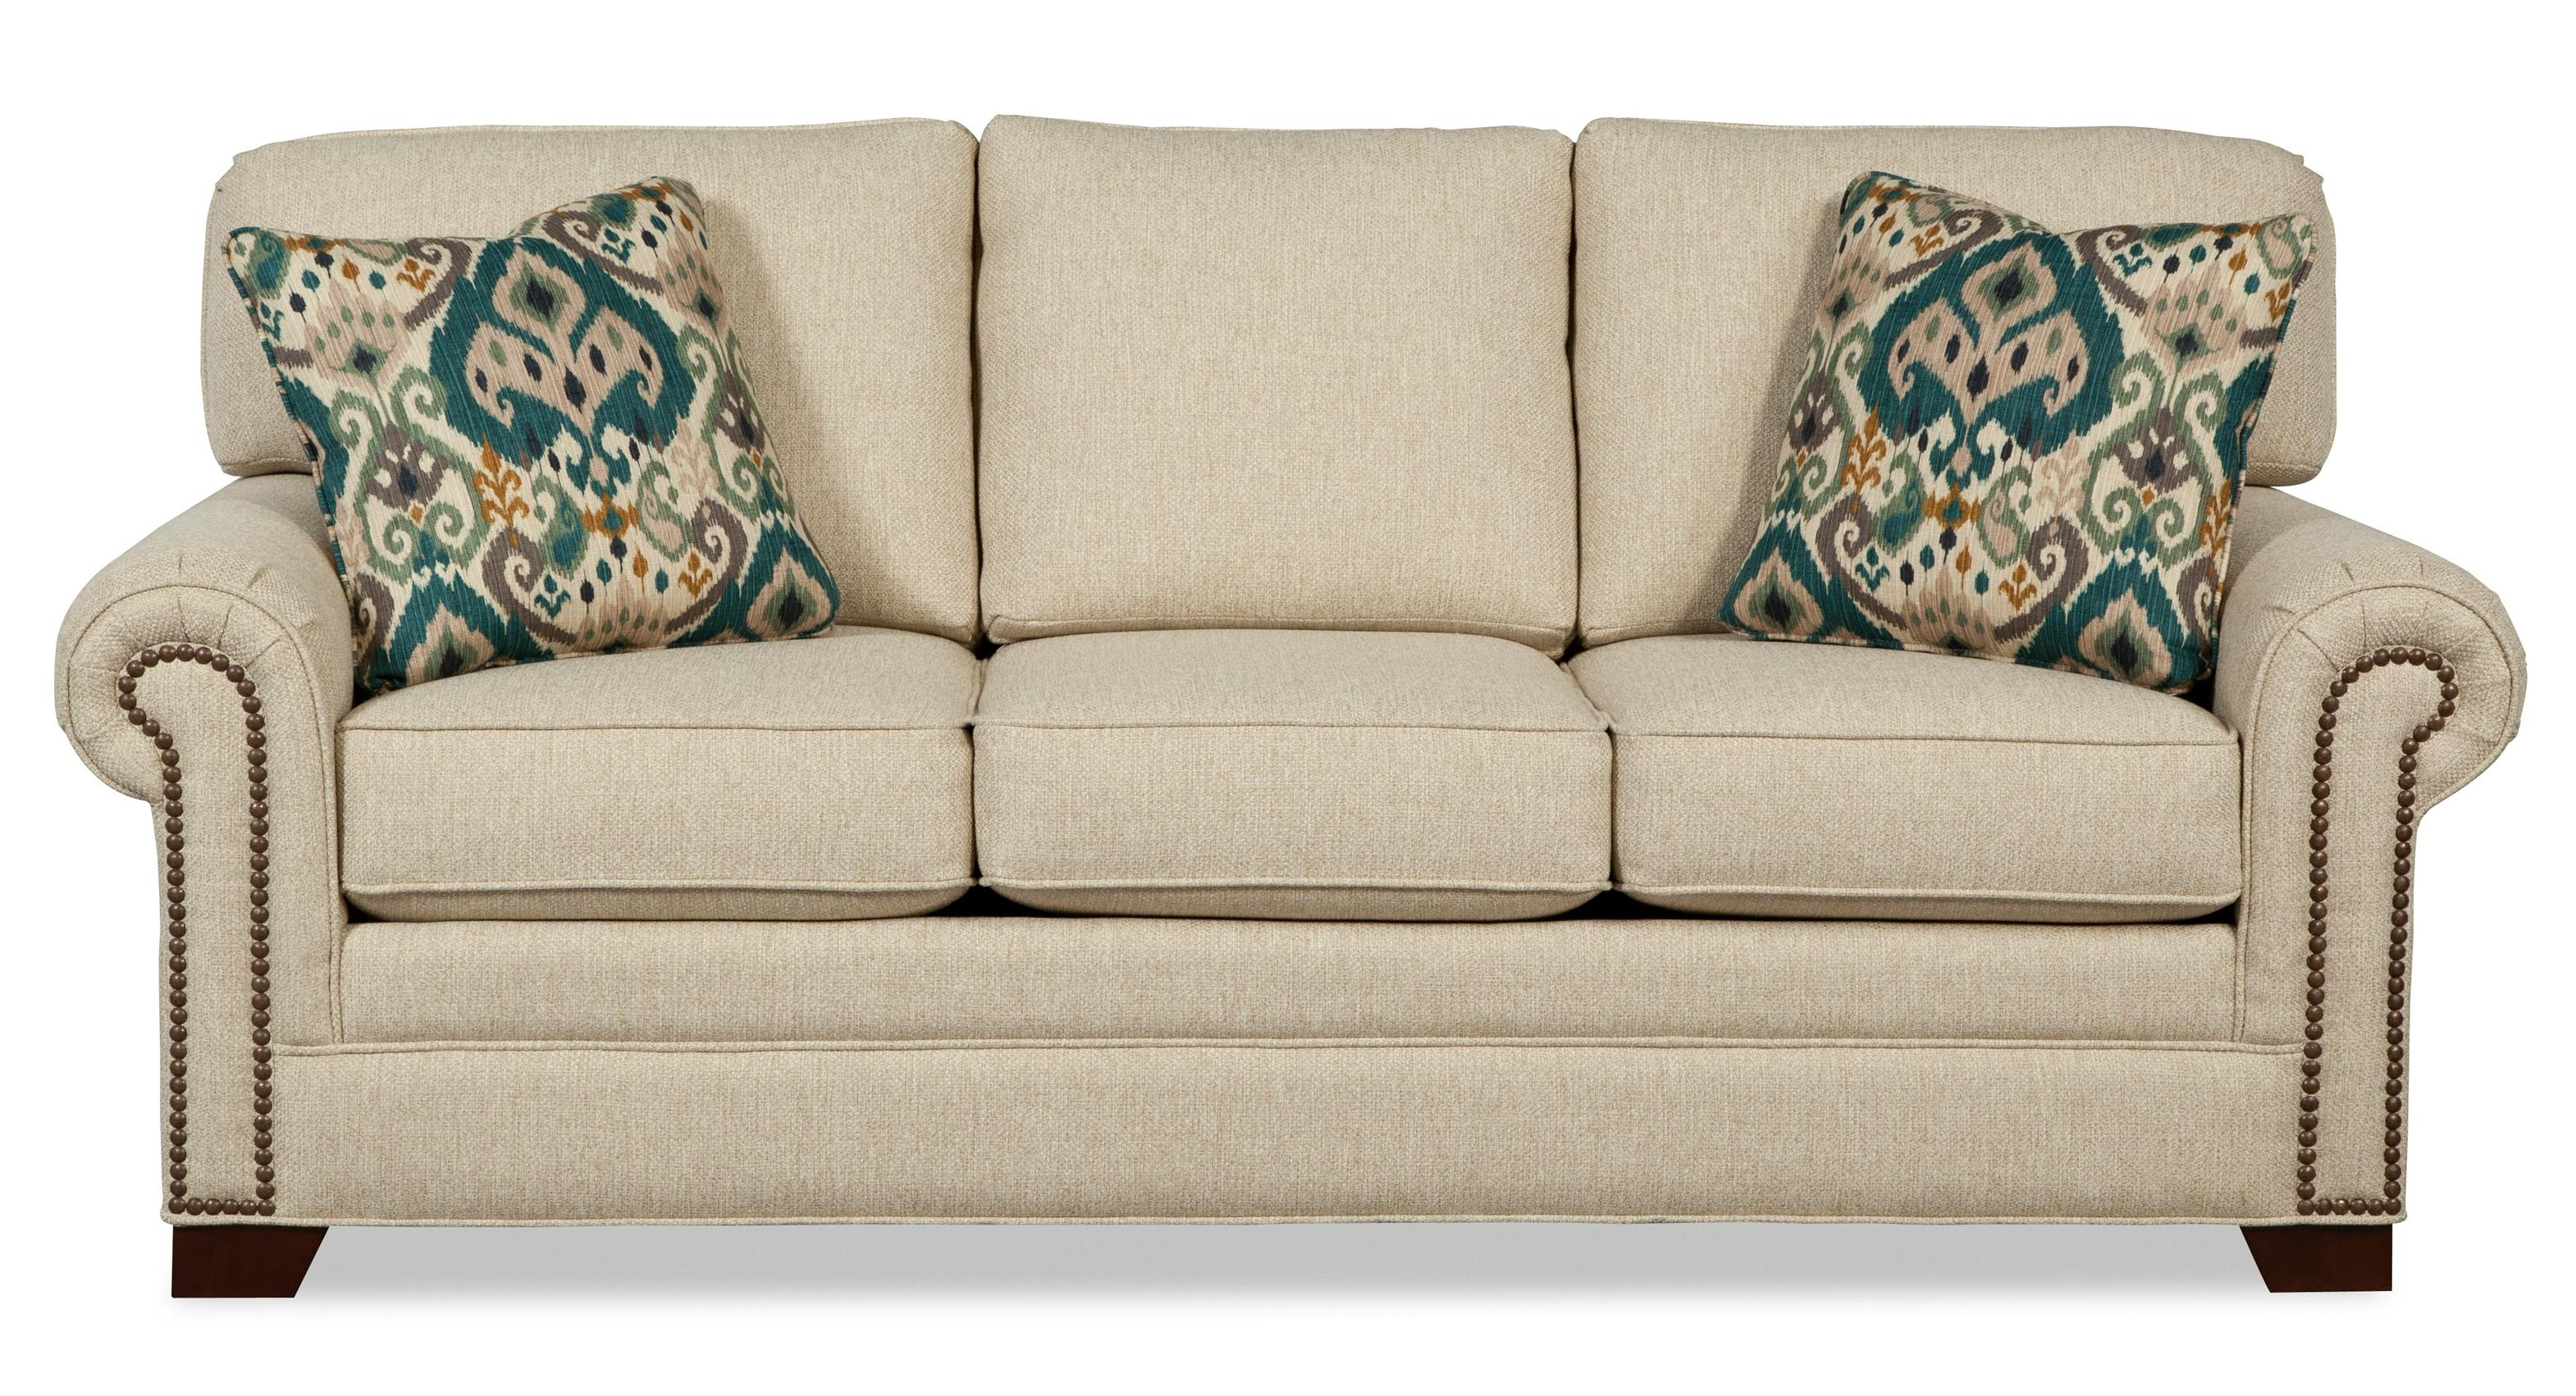 Transitional Sofa With Large Rolled Arms And Brass Nailheads By  ~ What Is A Transitional Sofa